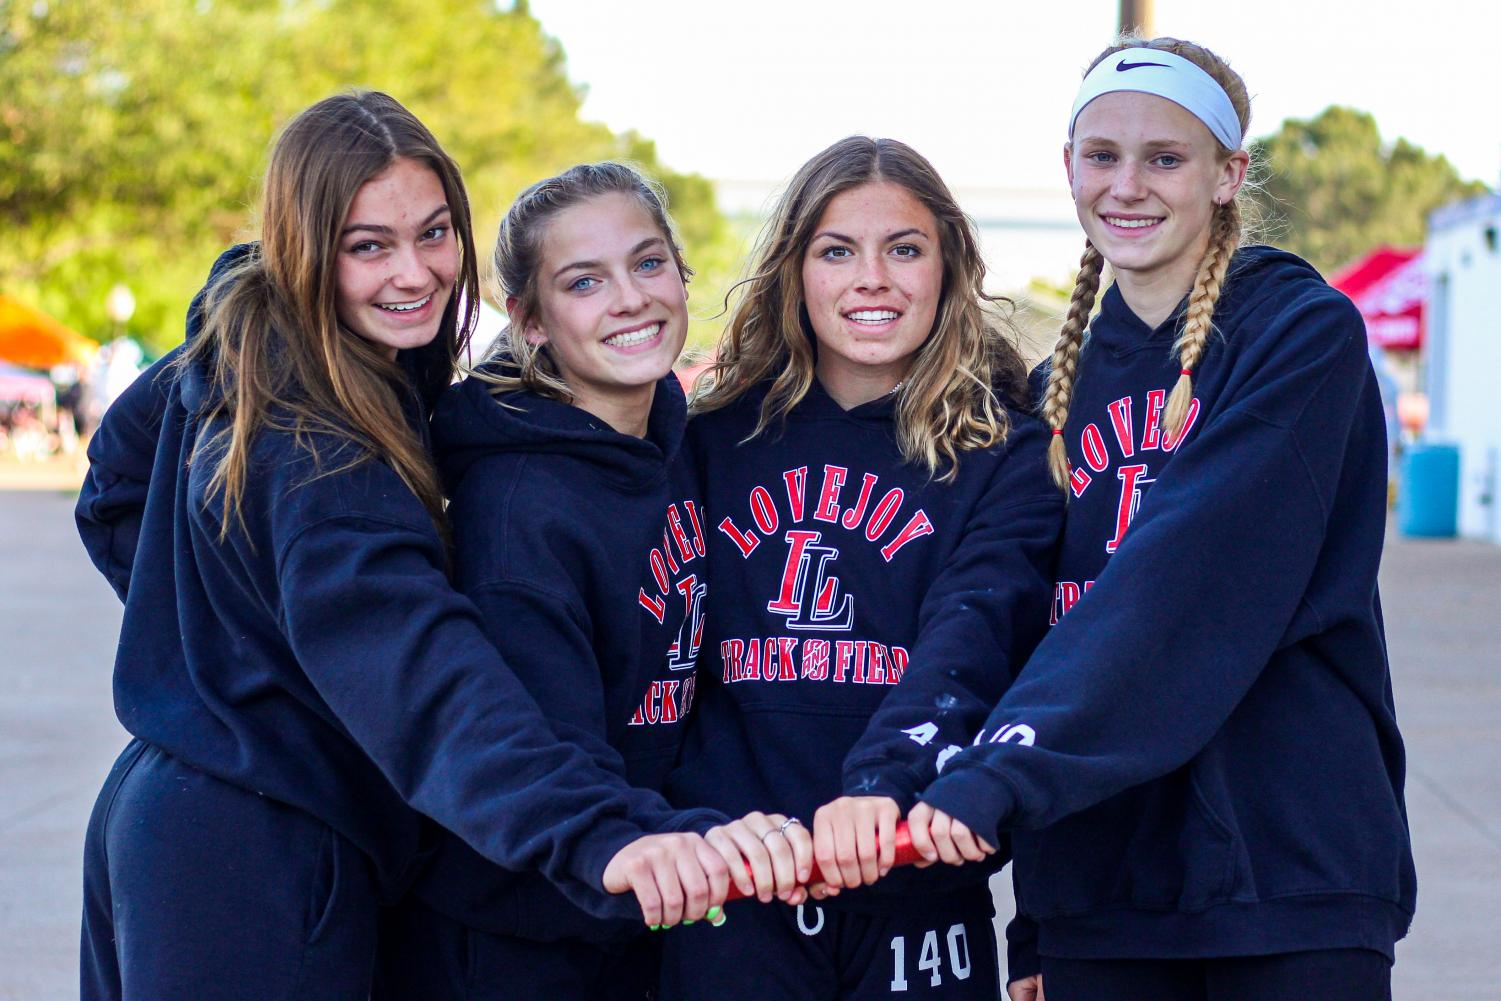 Sophomores Chloe Schaeffer, Bella Landrum and  Amy Morefield, as well as freshman Kelly Littlefield qualified for state in the 4x400 meter relay race. This is the first year this team is going to state.